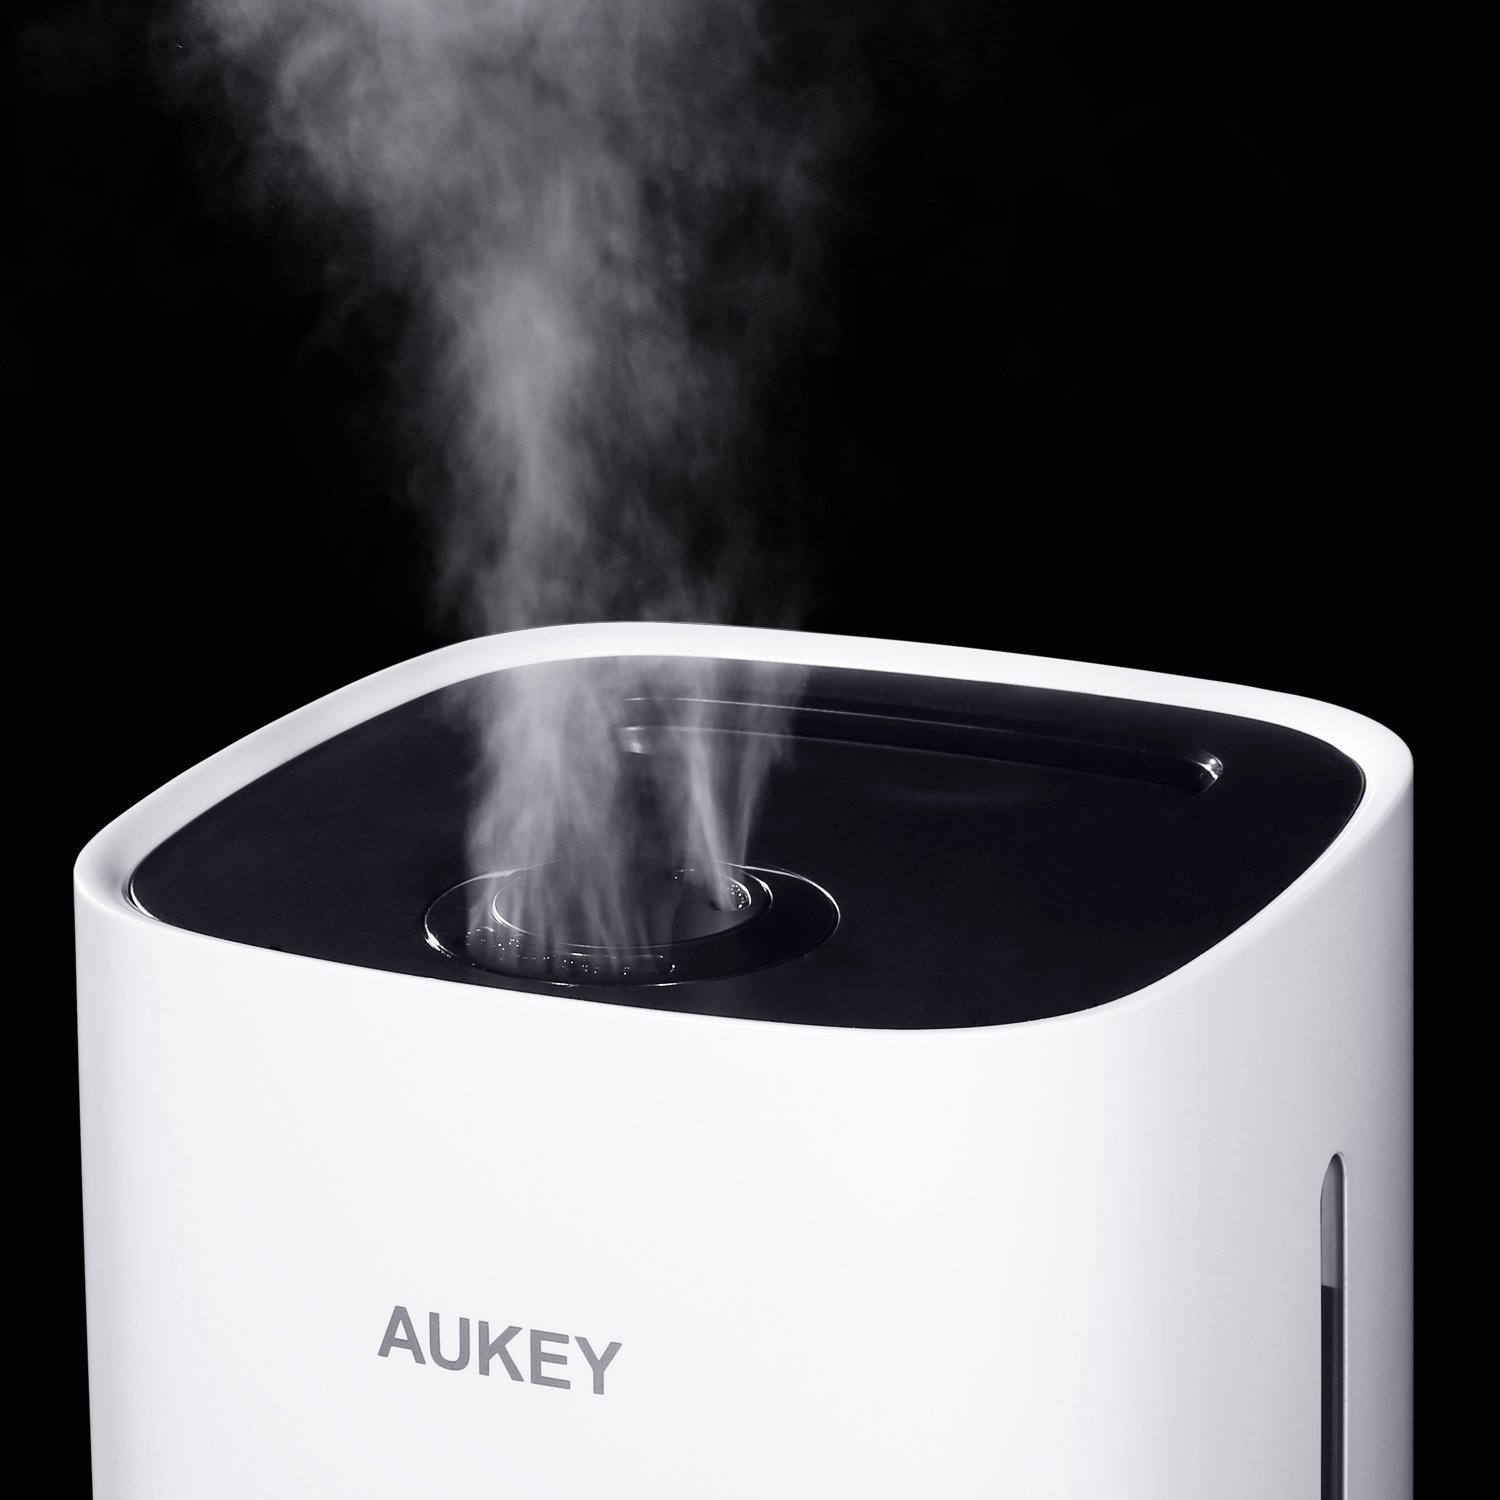 AUKEY Cool Mist Humidifier 3.5L / 0.95 Gallon Large Capacity